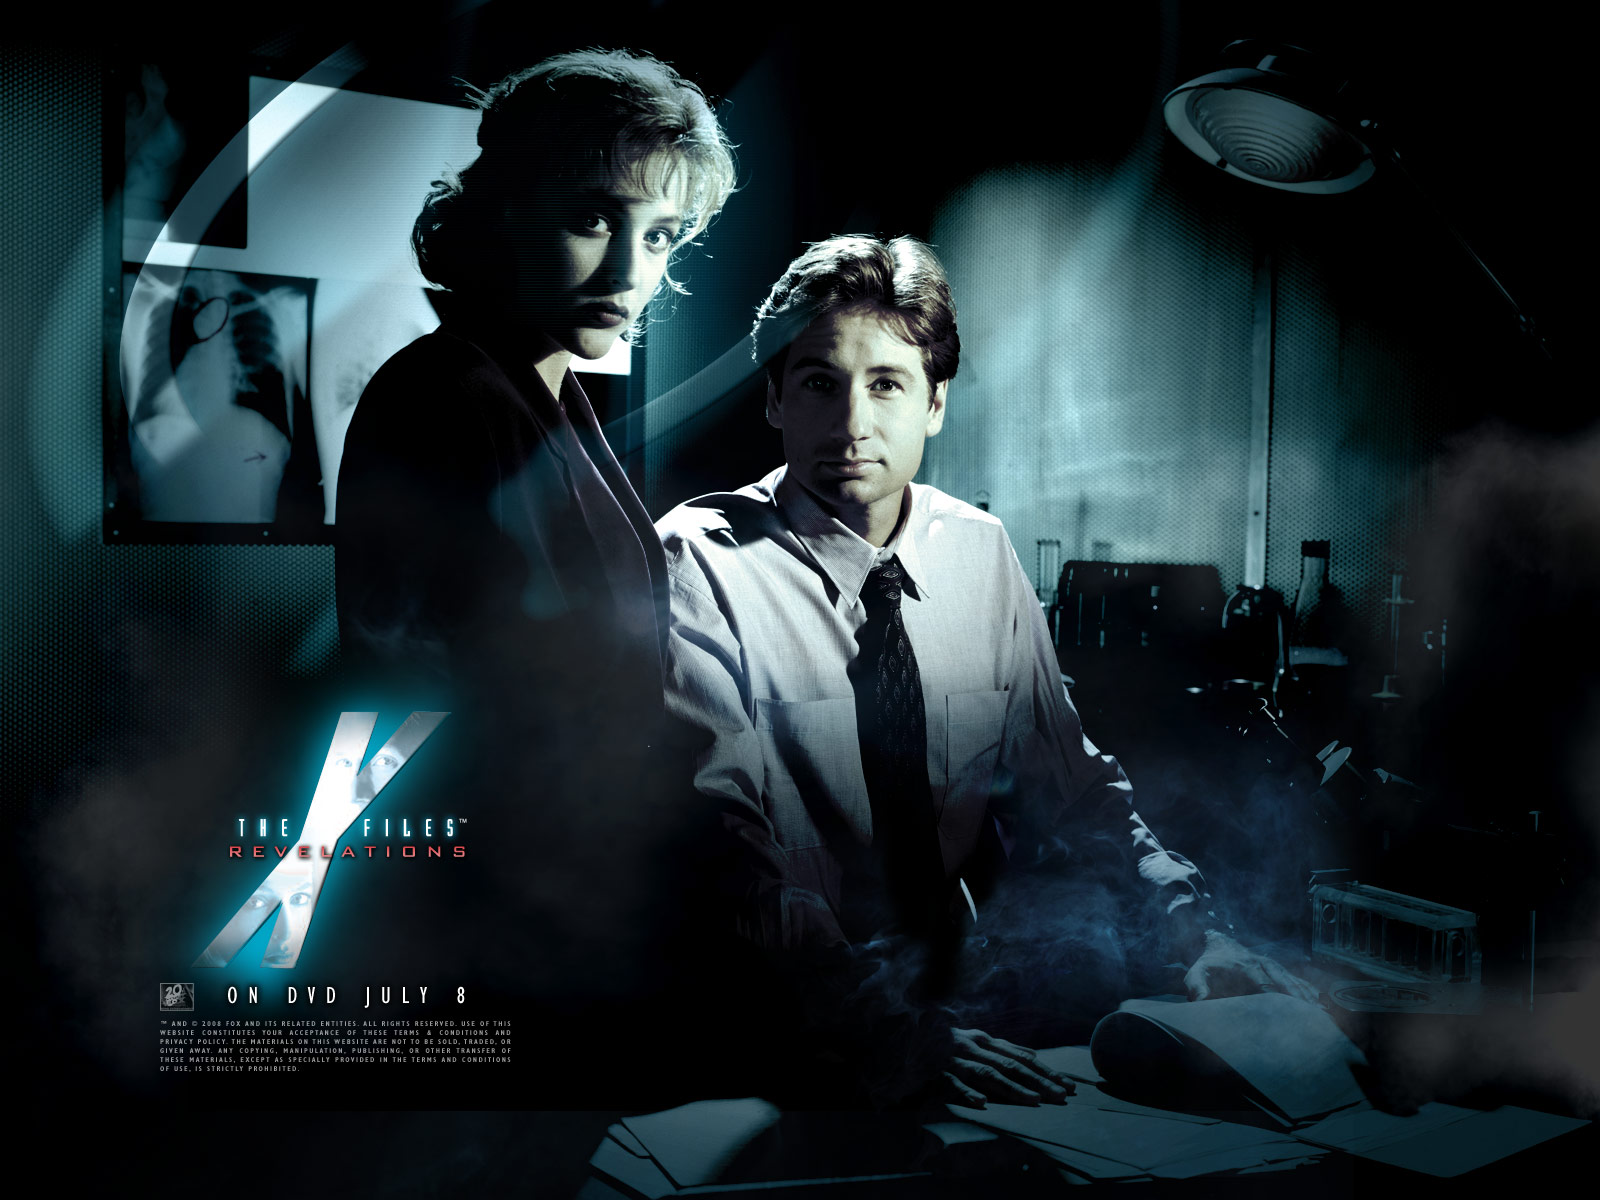 The X Files HD Wallpapers for desktop download 1600x1200